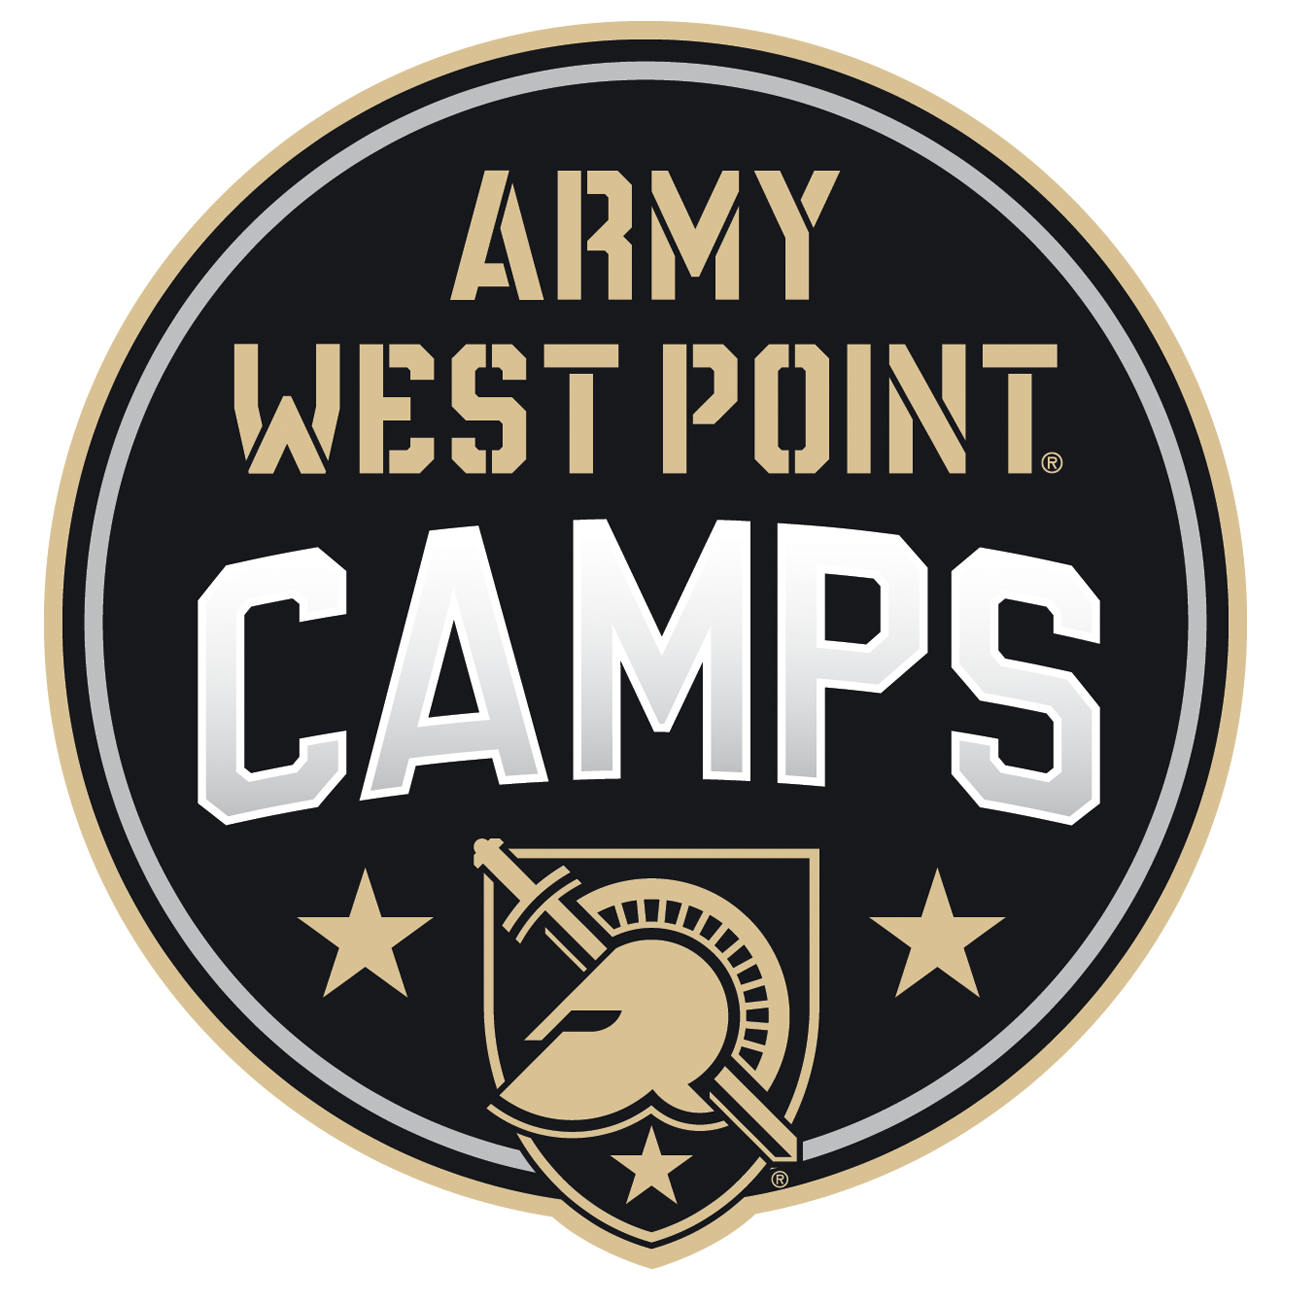 Army West Point - Women's Lacrosse Camps